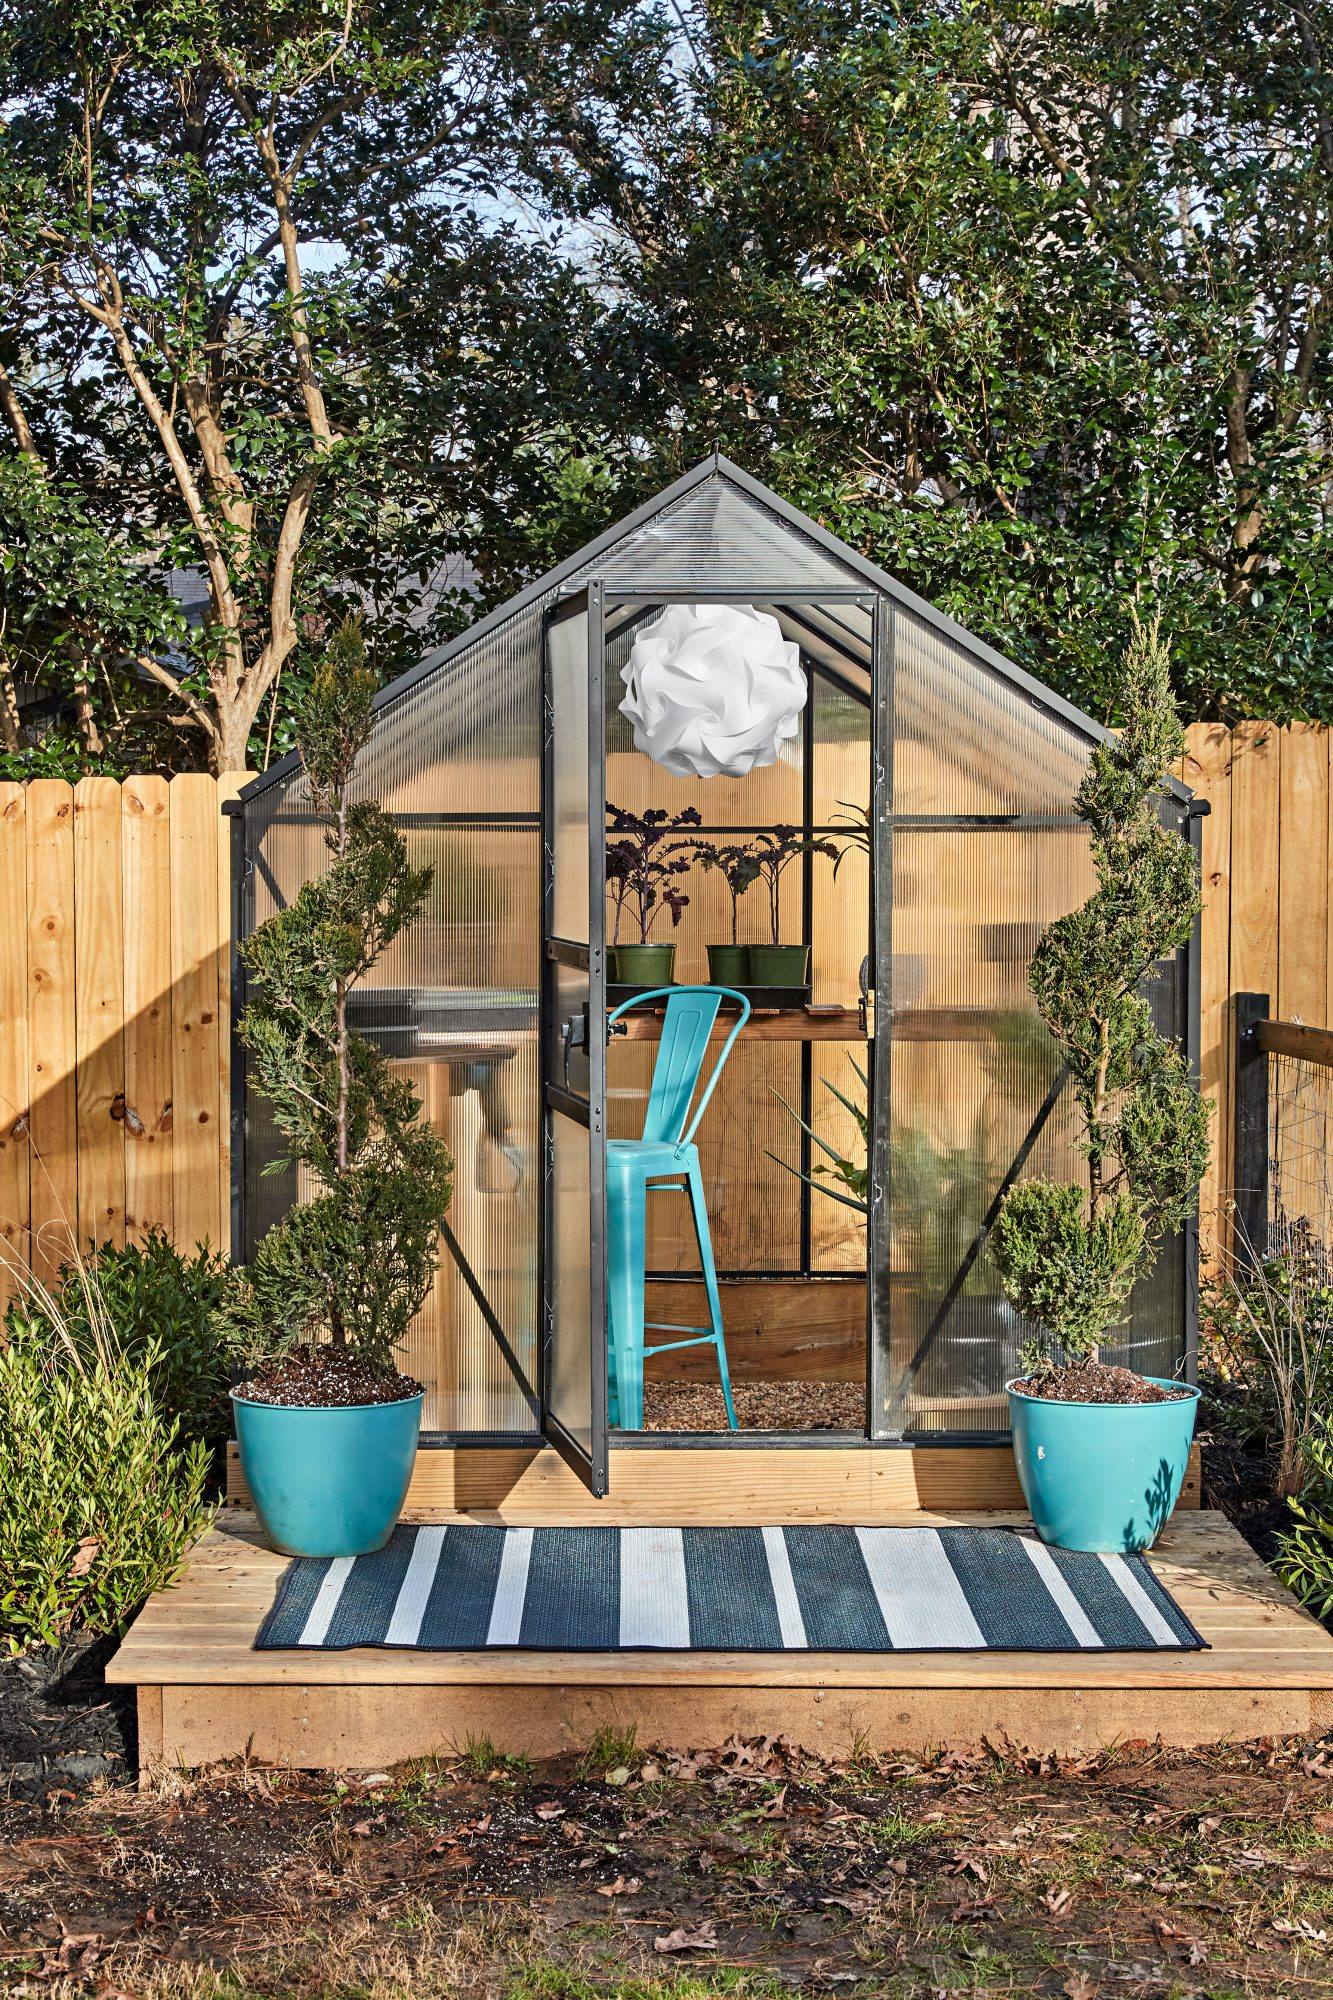 Backyard Greenhouse with teal accents